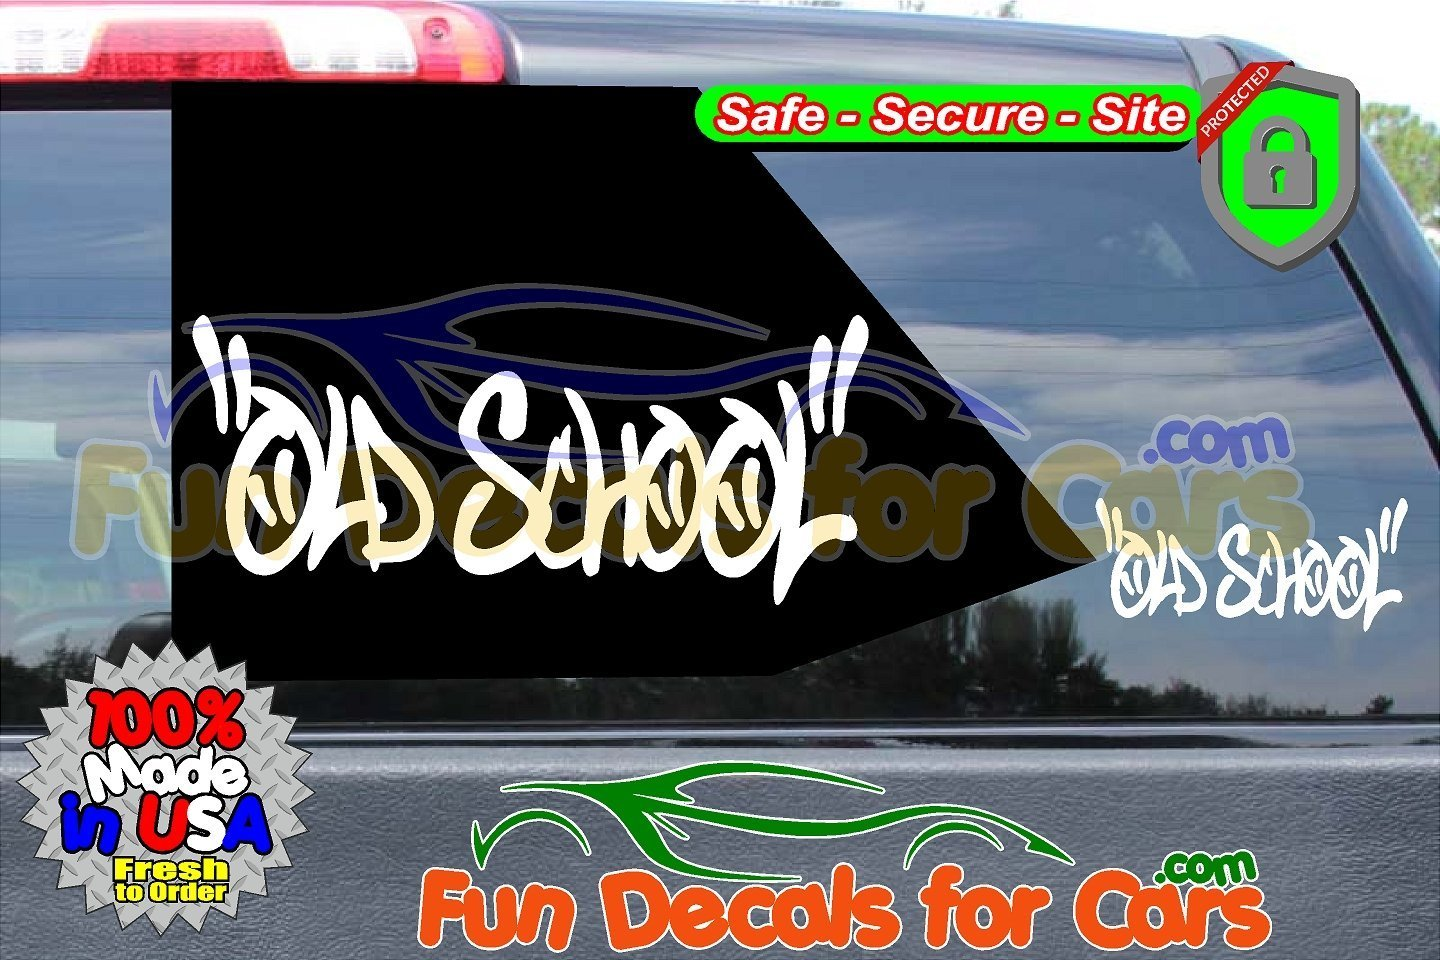 Old School Decal Lowrider Vinyl Die Cut Stickers